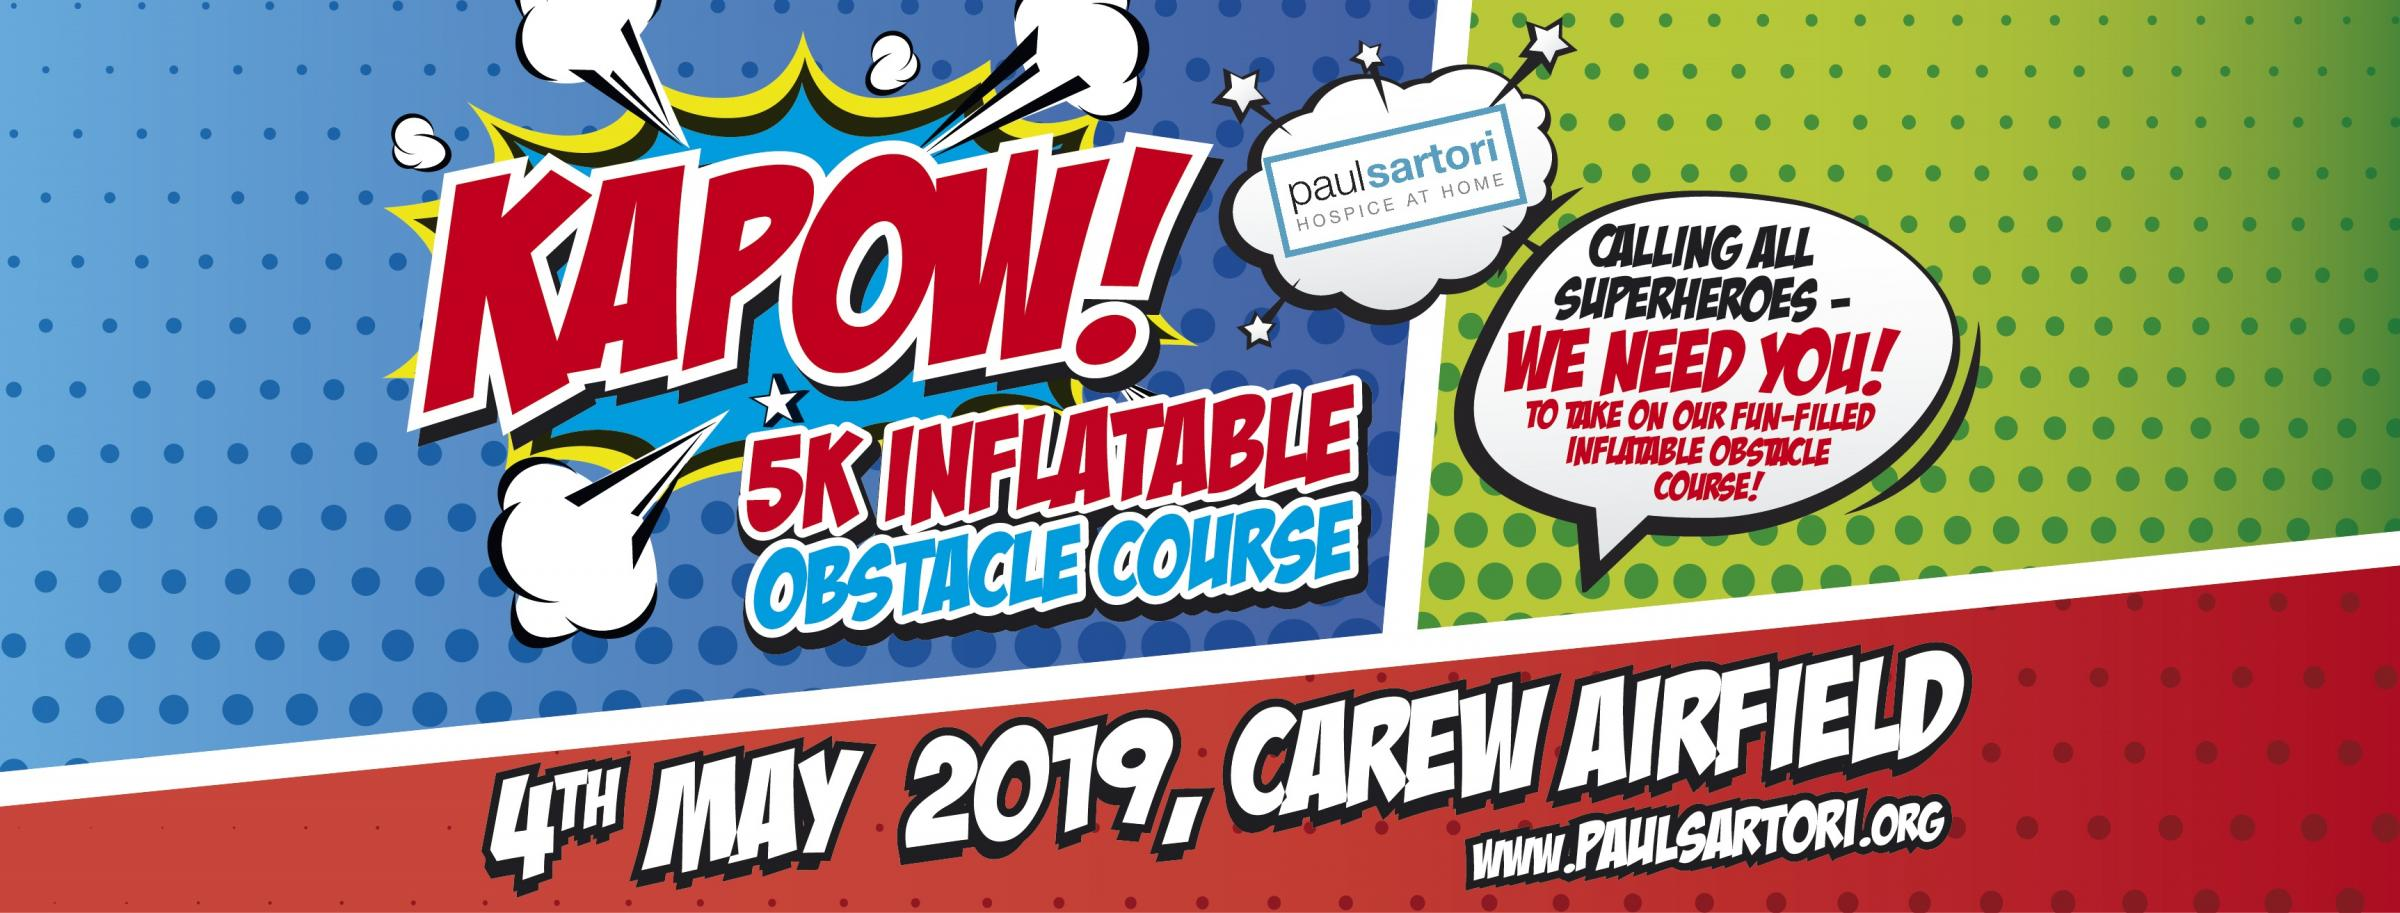 KAPOW! 5k inflatable obstacle course